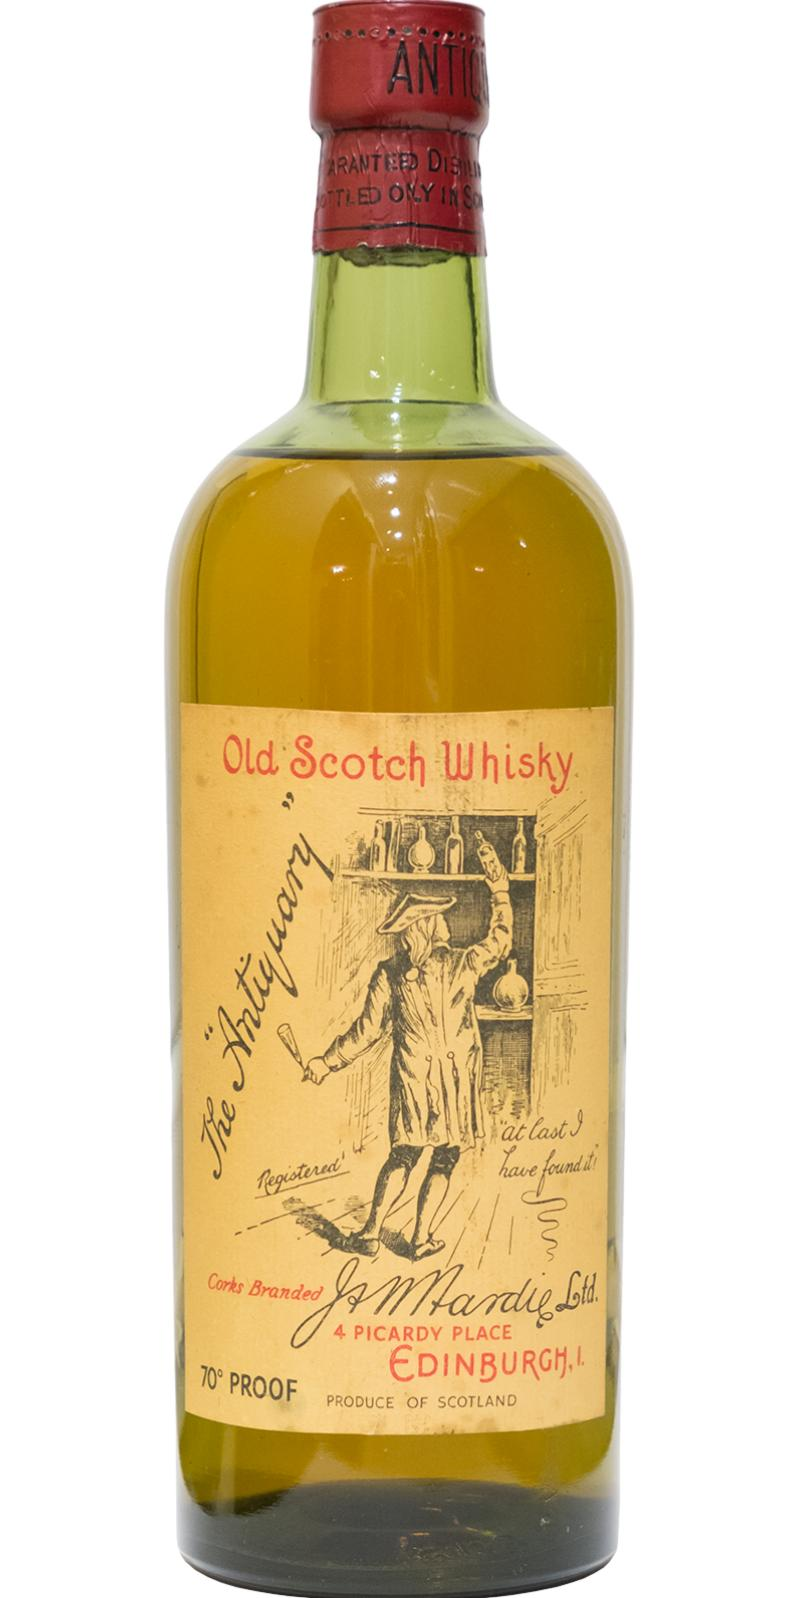 The Antiquary Old Scotch Whisky